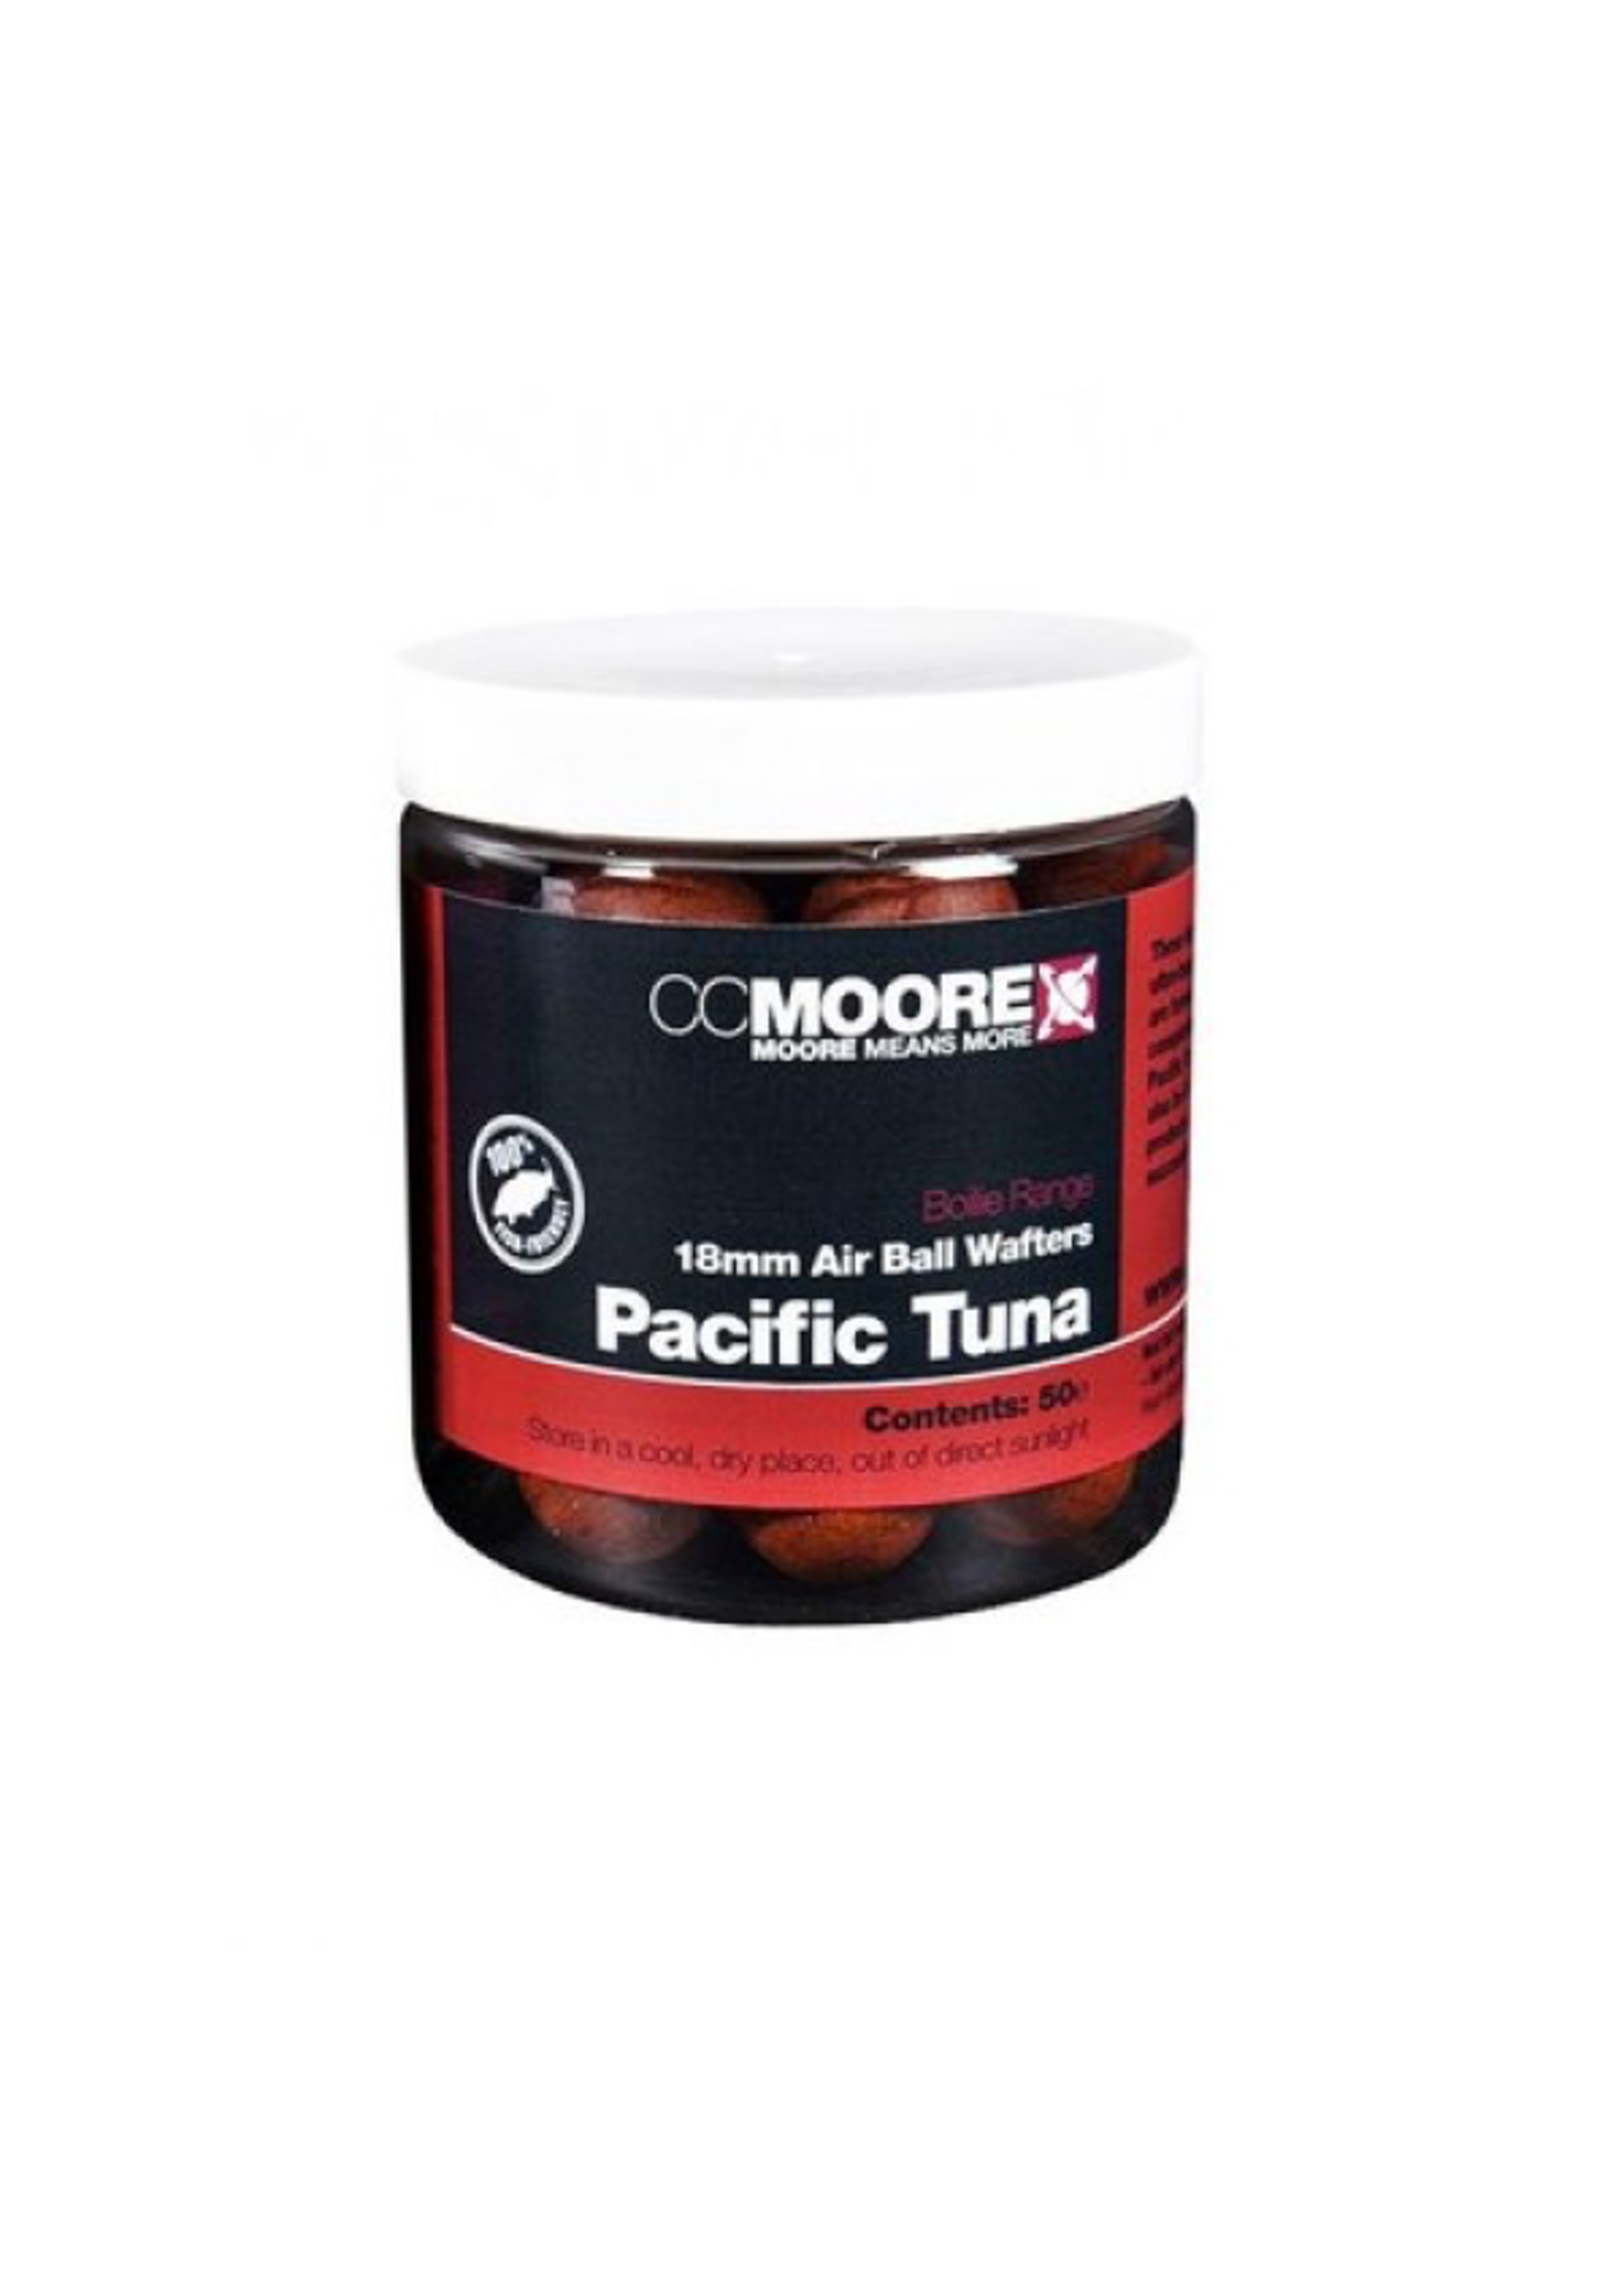 CC moore Pacific Tuna Airball Wafters